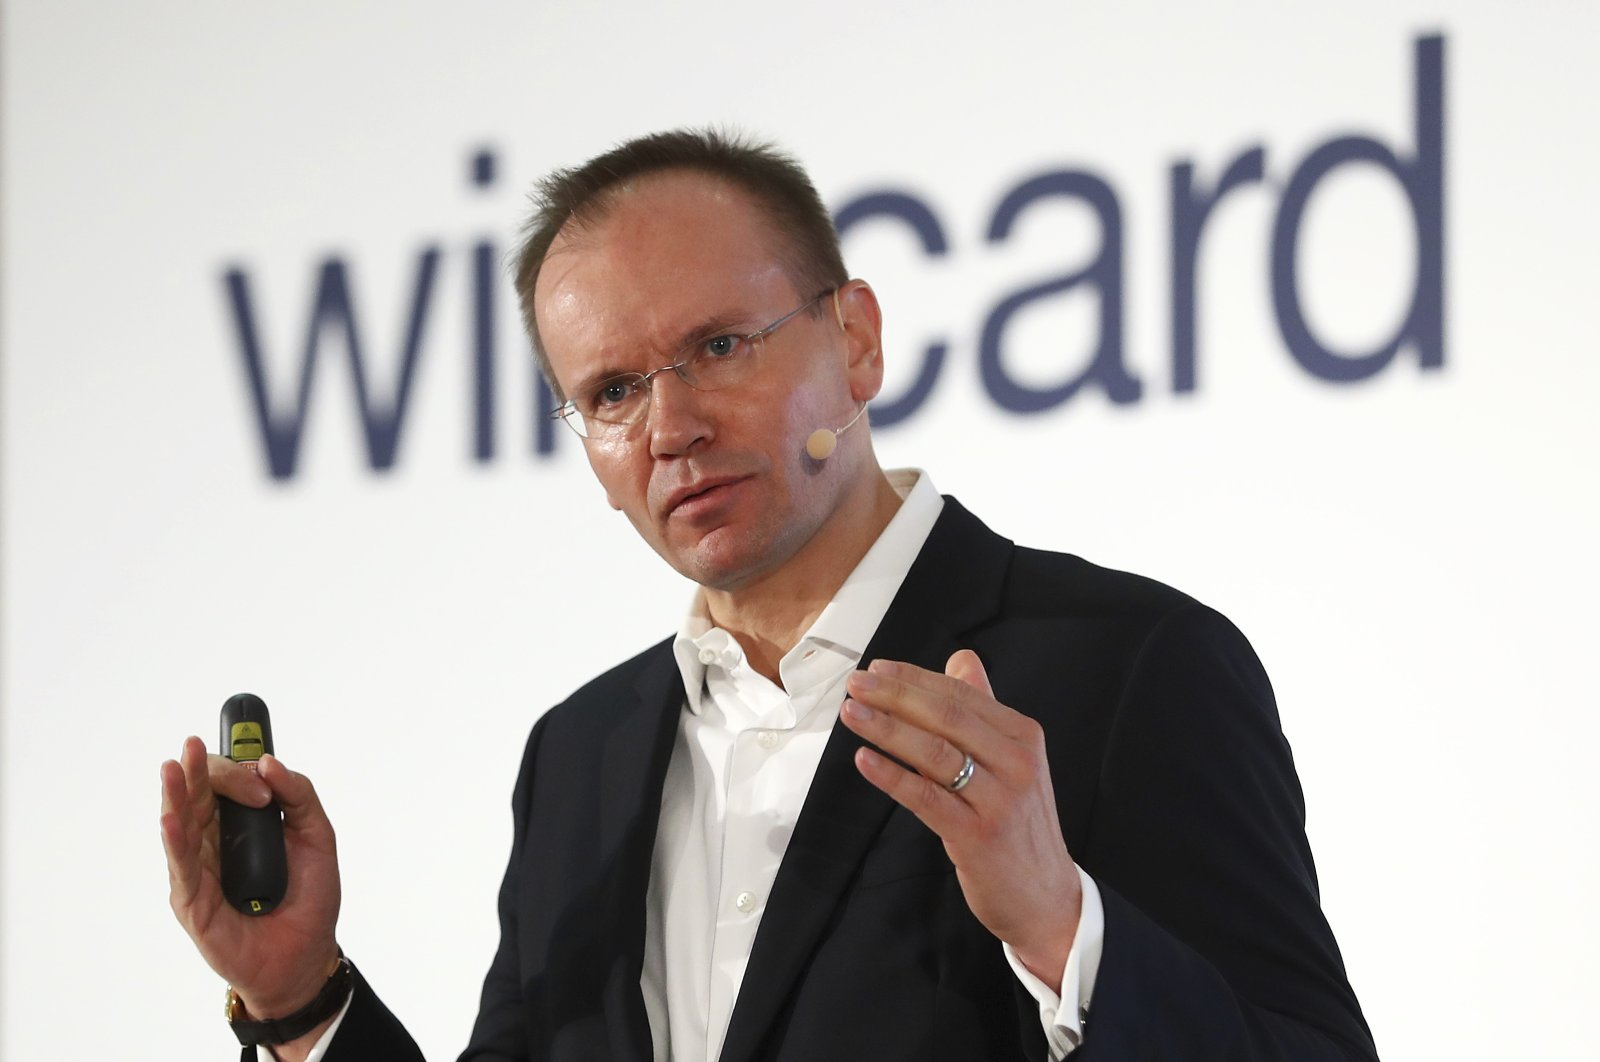 Markus Braun, CEO of financial services company Wirecard, attends the earnings press conference in Munich, Germany, April 25, 2019. (AP Photo)